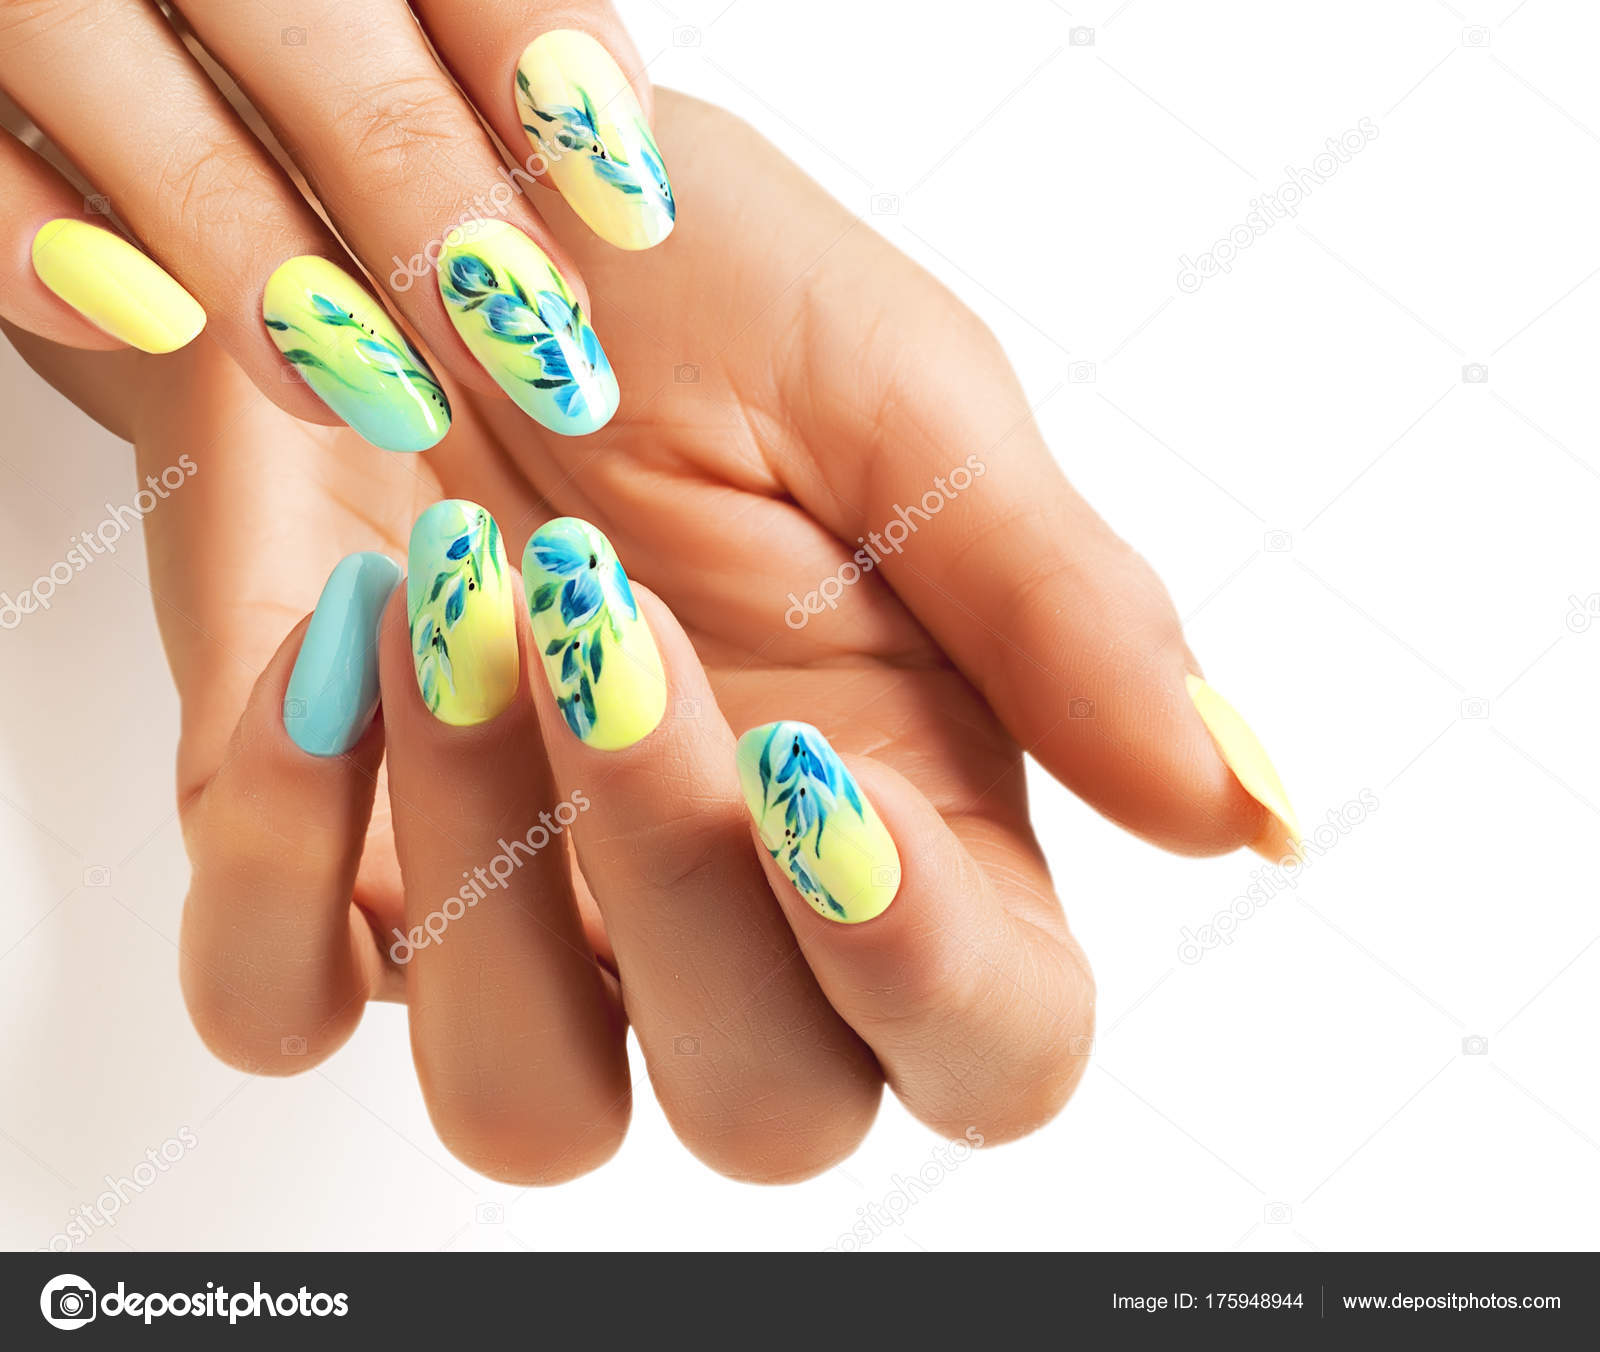 Blue and yellow nail design